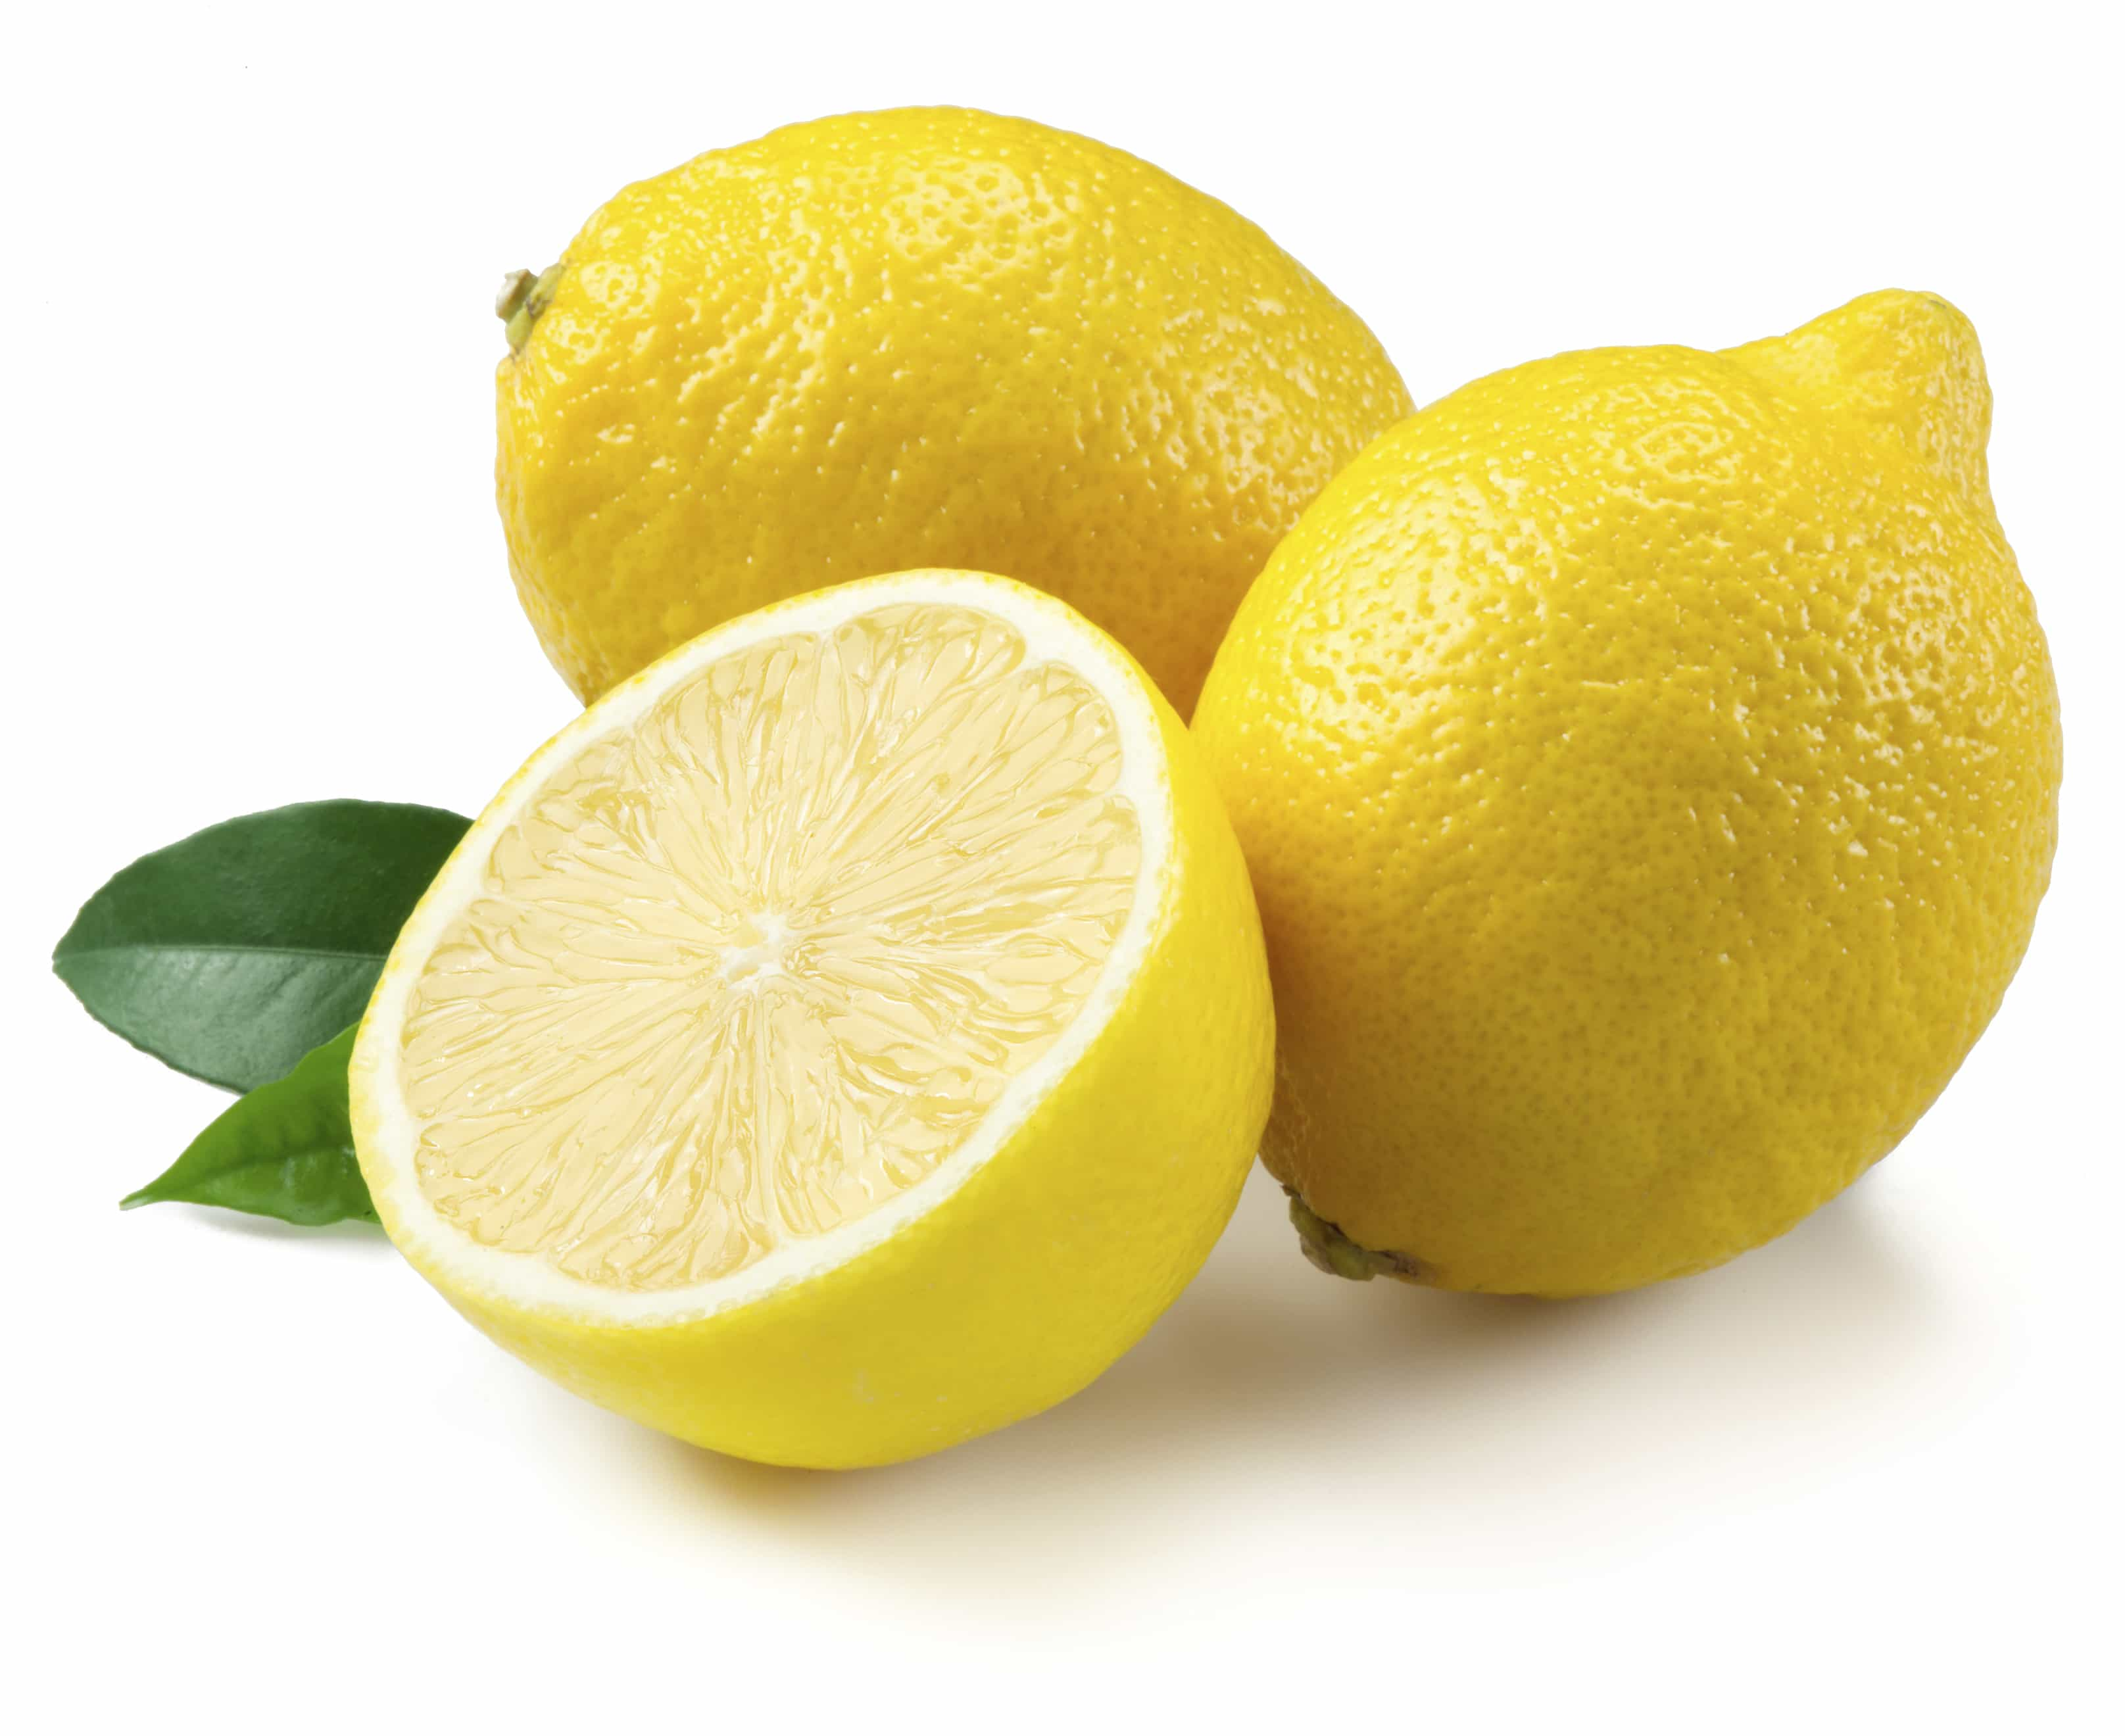 Best quality natural essential oils including Lemon Oil - Base Lemon CCT™, Base Lemon Oil AA, Base Lemon Oil IT (Citrus × Limon) and other fragrance & perfume oils at the most discount rates by BMV Fragrances in UP, India.